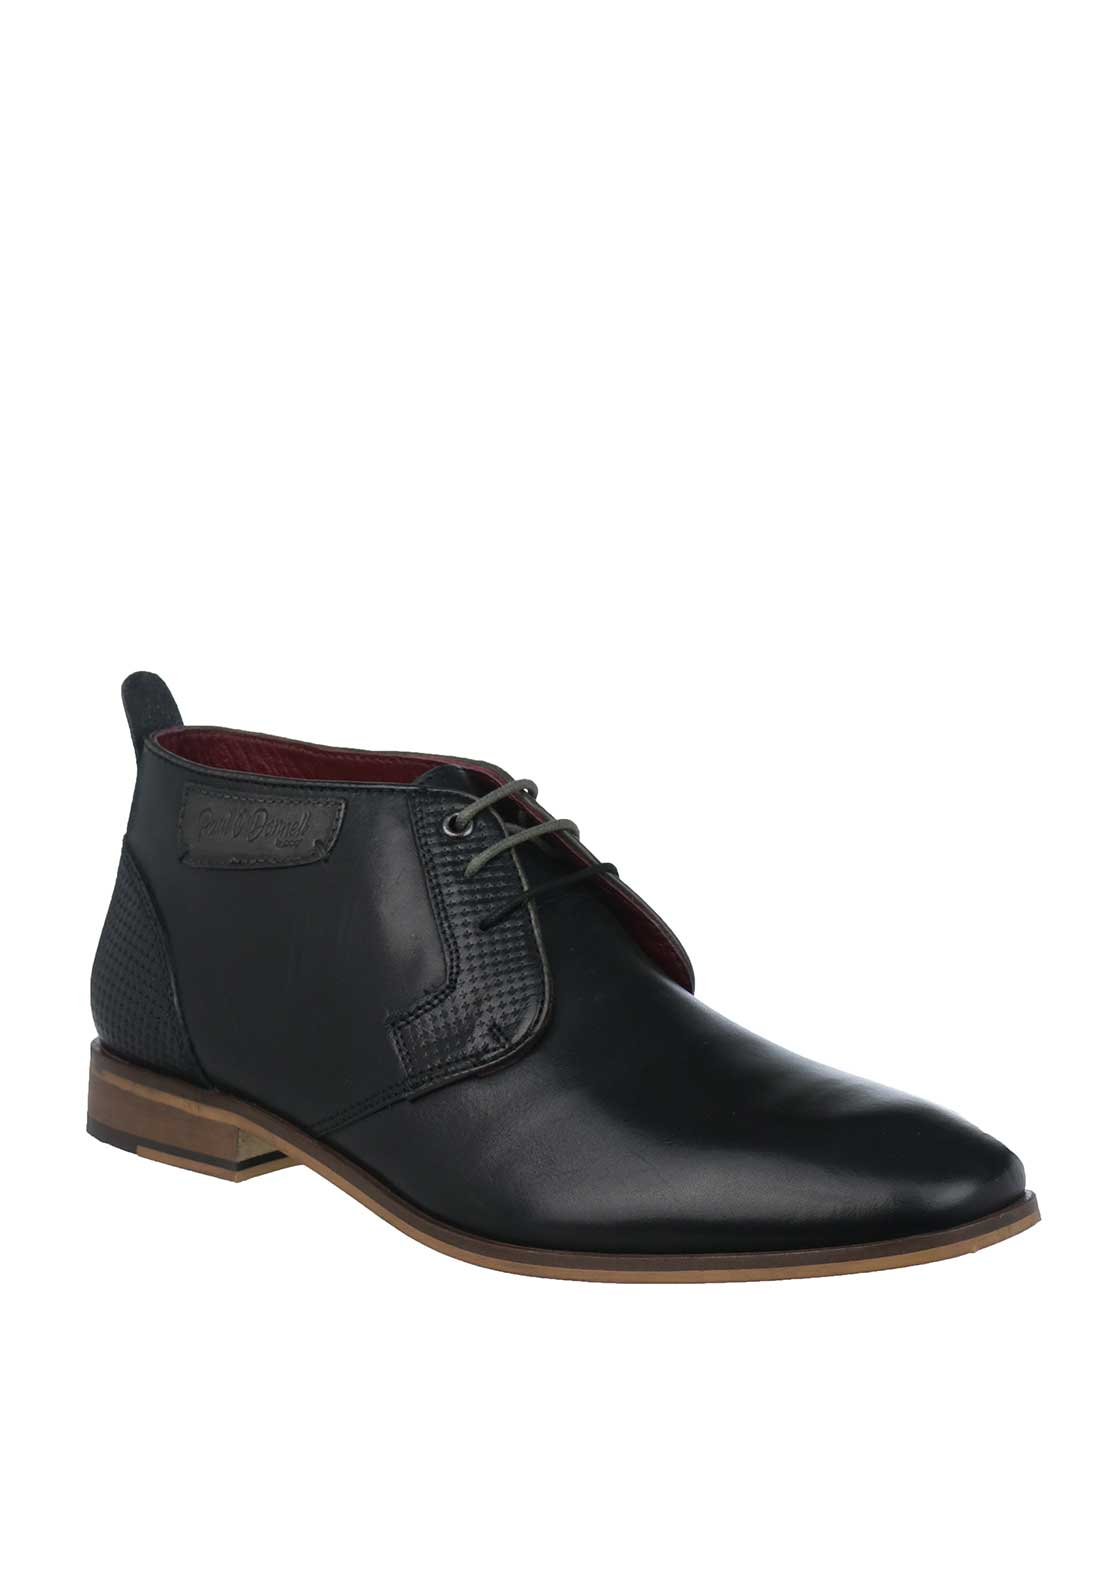 Paul O'Donnell by POD Fresno Leather Boots, Black